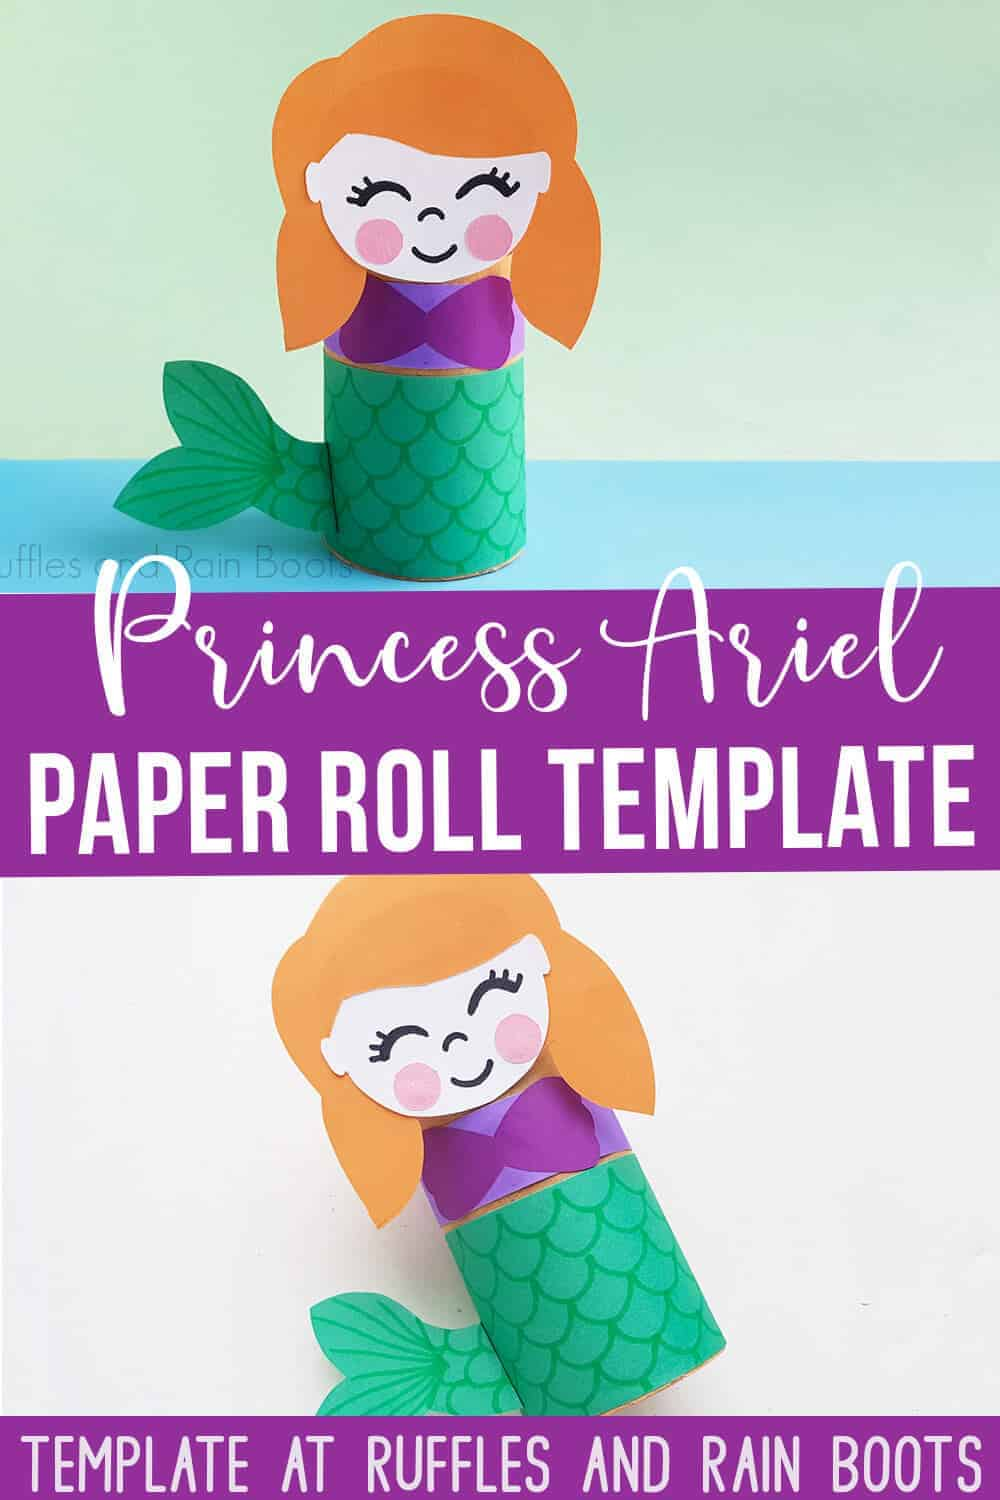 Pin Image Collage of Little Mermaid Paper Craft with Purple blocks that say Princess Ariel paper roll template.